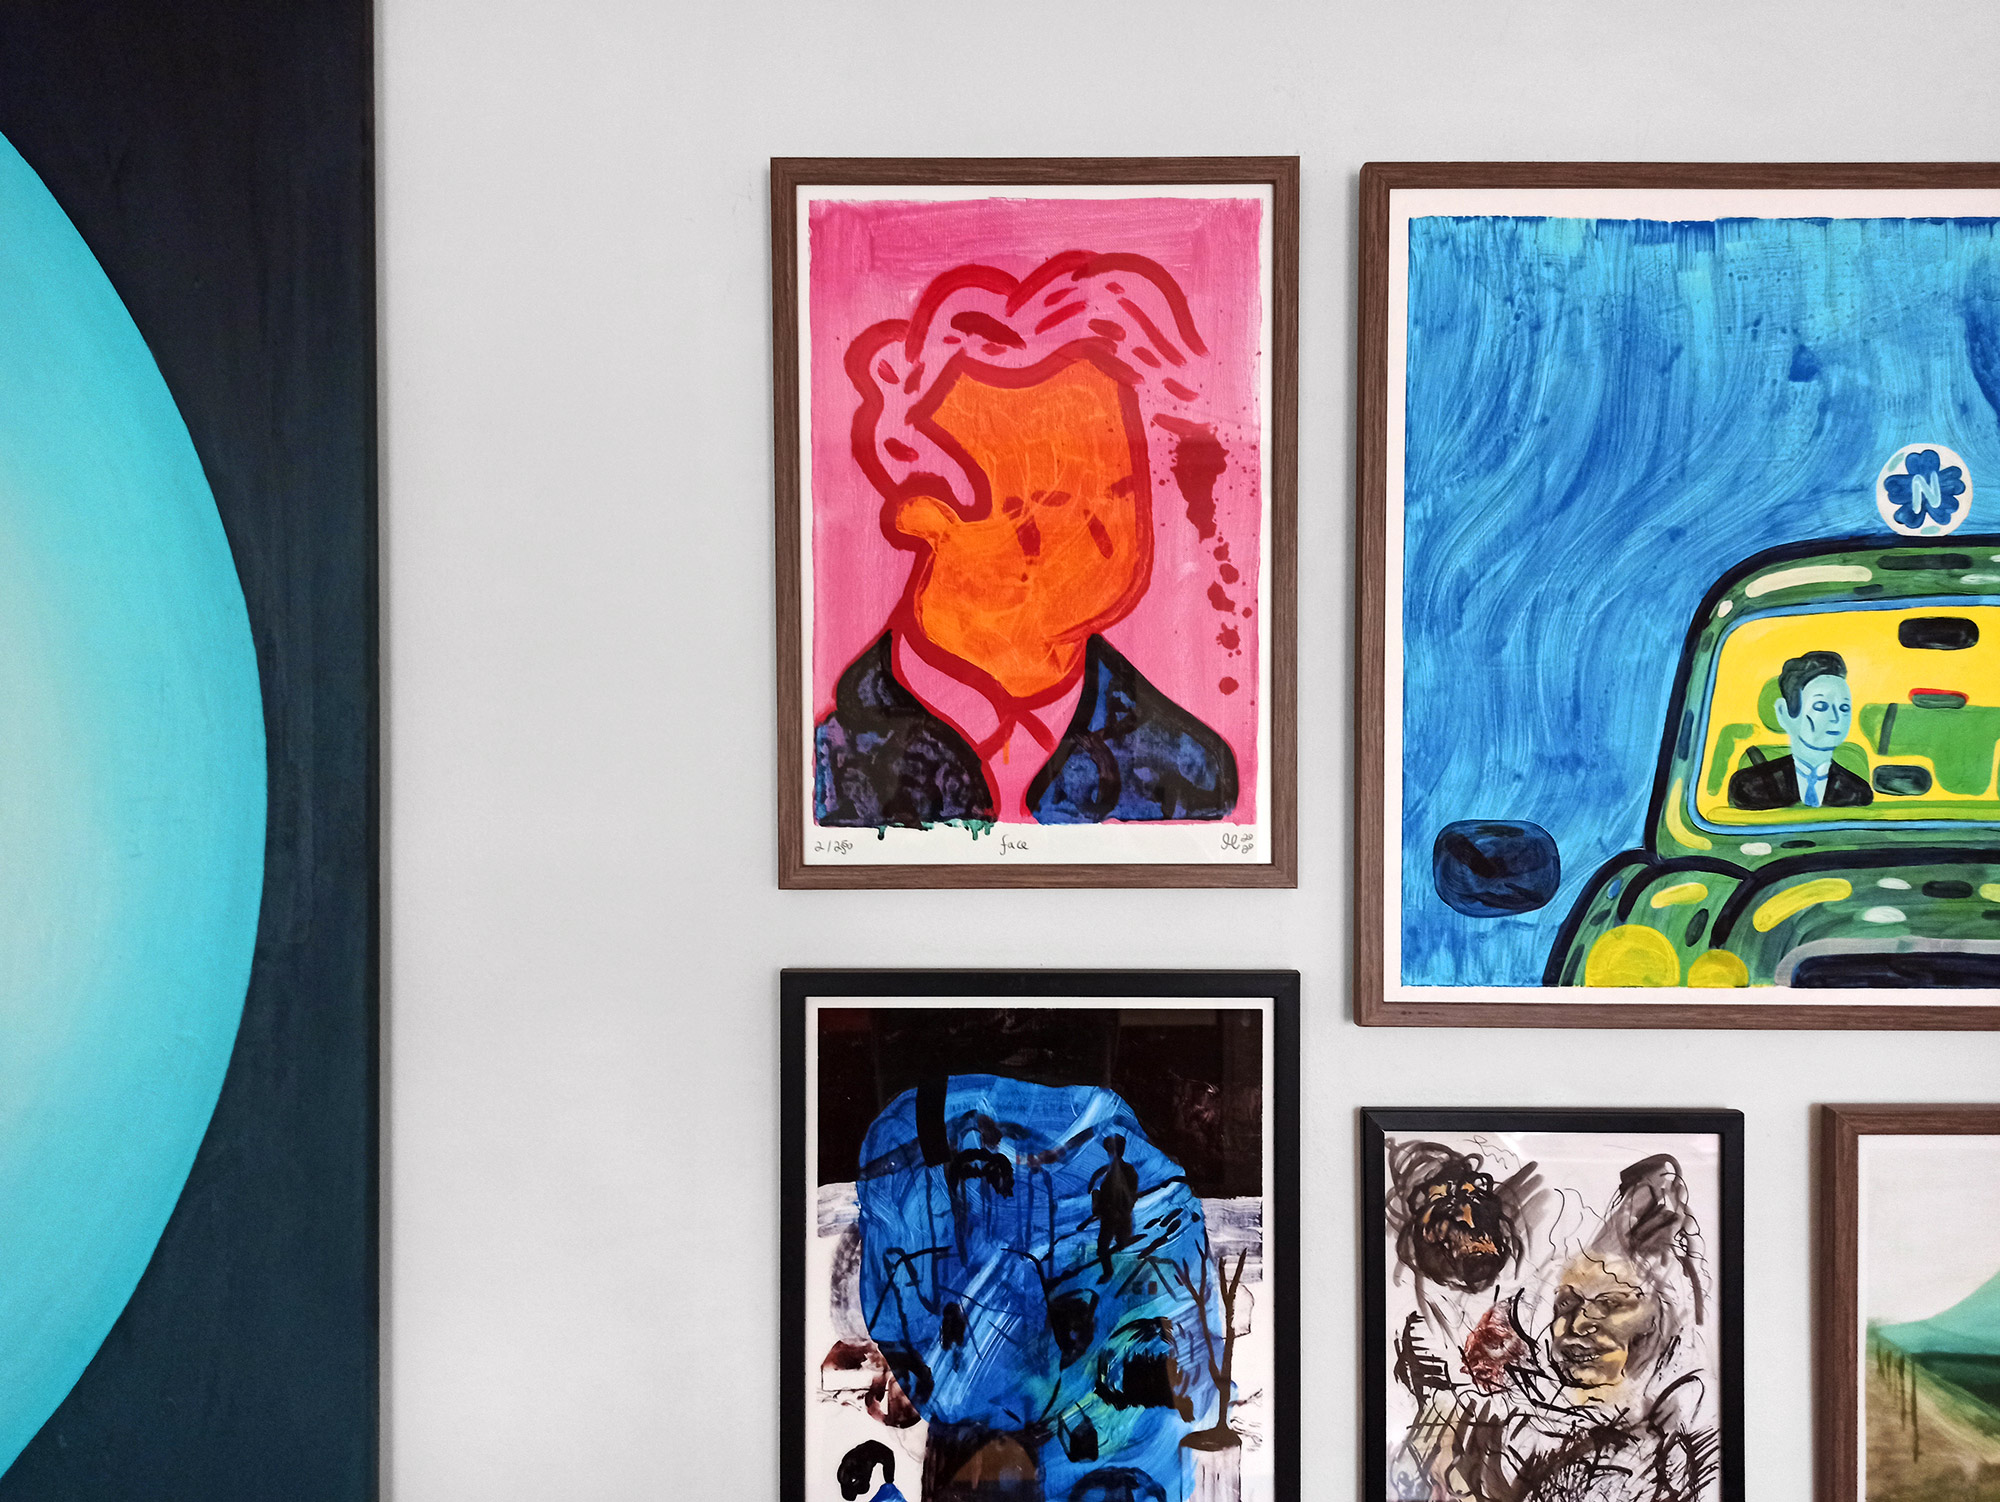 posters-prints, giclee-print, colorful, figurative, illustrative, pop, people, blue, pink, yellow, ink, paper, contemporary-art, danish, decorative, design, faces, interior, interior-design, modern, modern-art, nordic, posters, prints, scandinavien, Buy original high quality art. Paintings, drawings, limited edition prints & posters by talented artists.